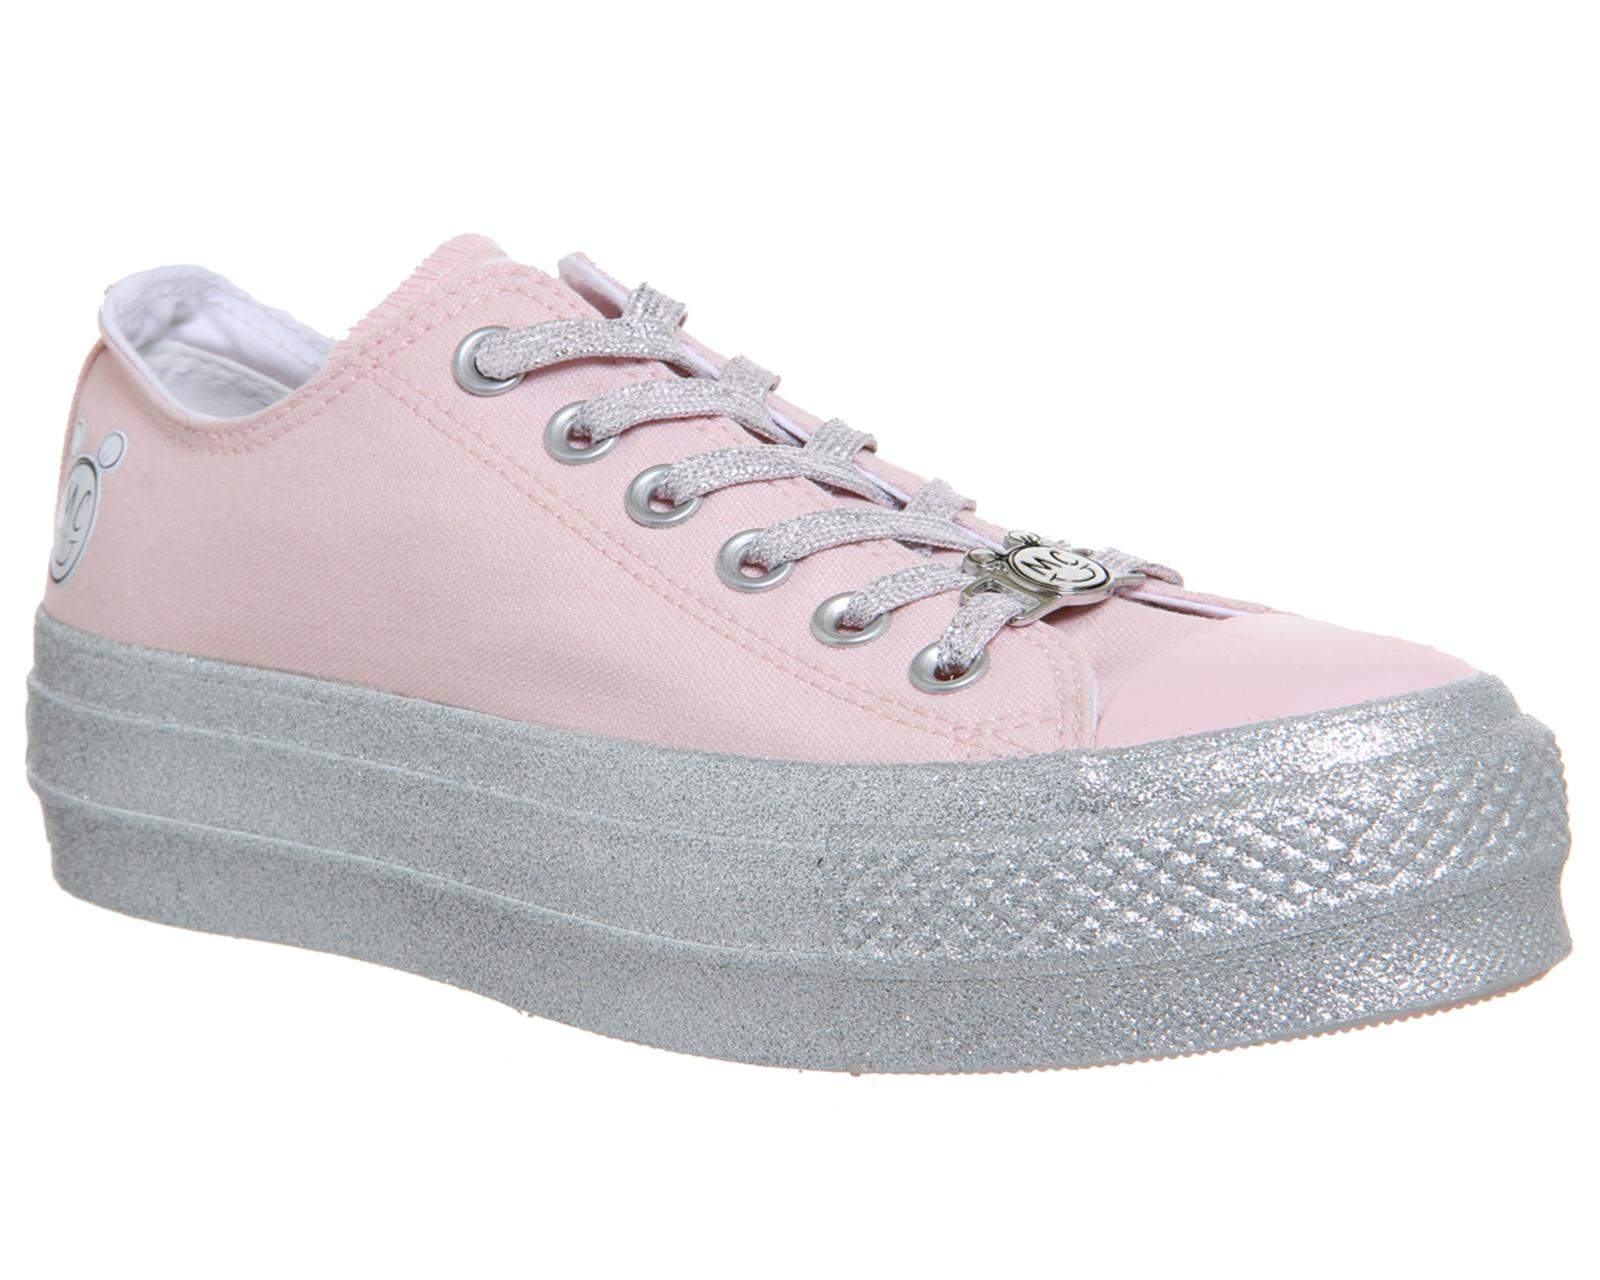 b05cf548e14138 Converse Ctas Lift Ox Trainers in Pink - Lyst